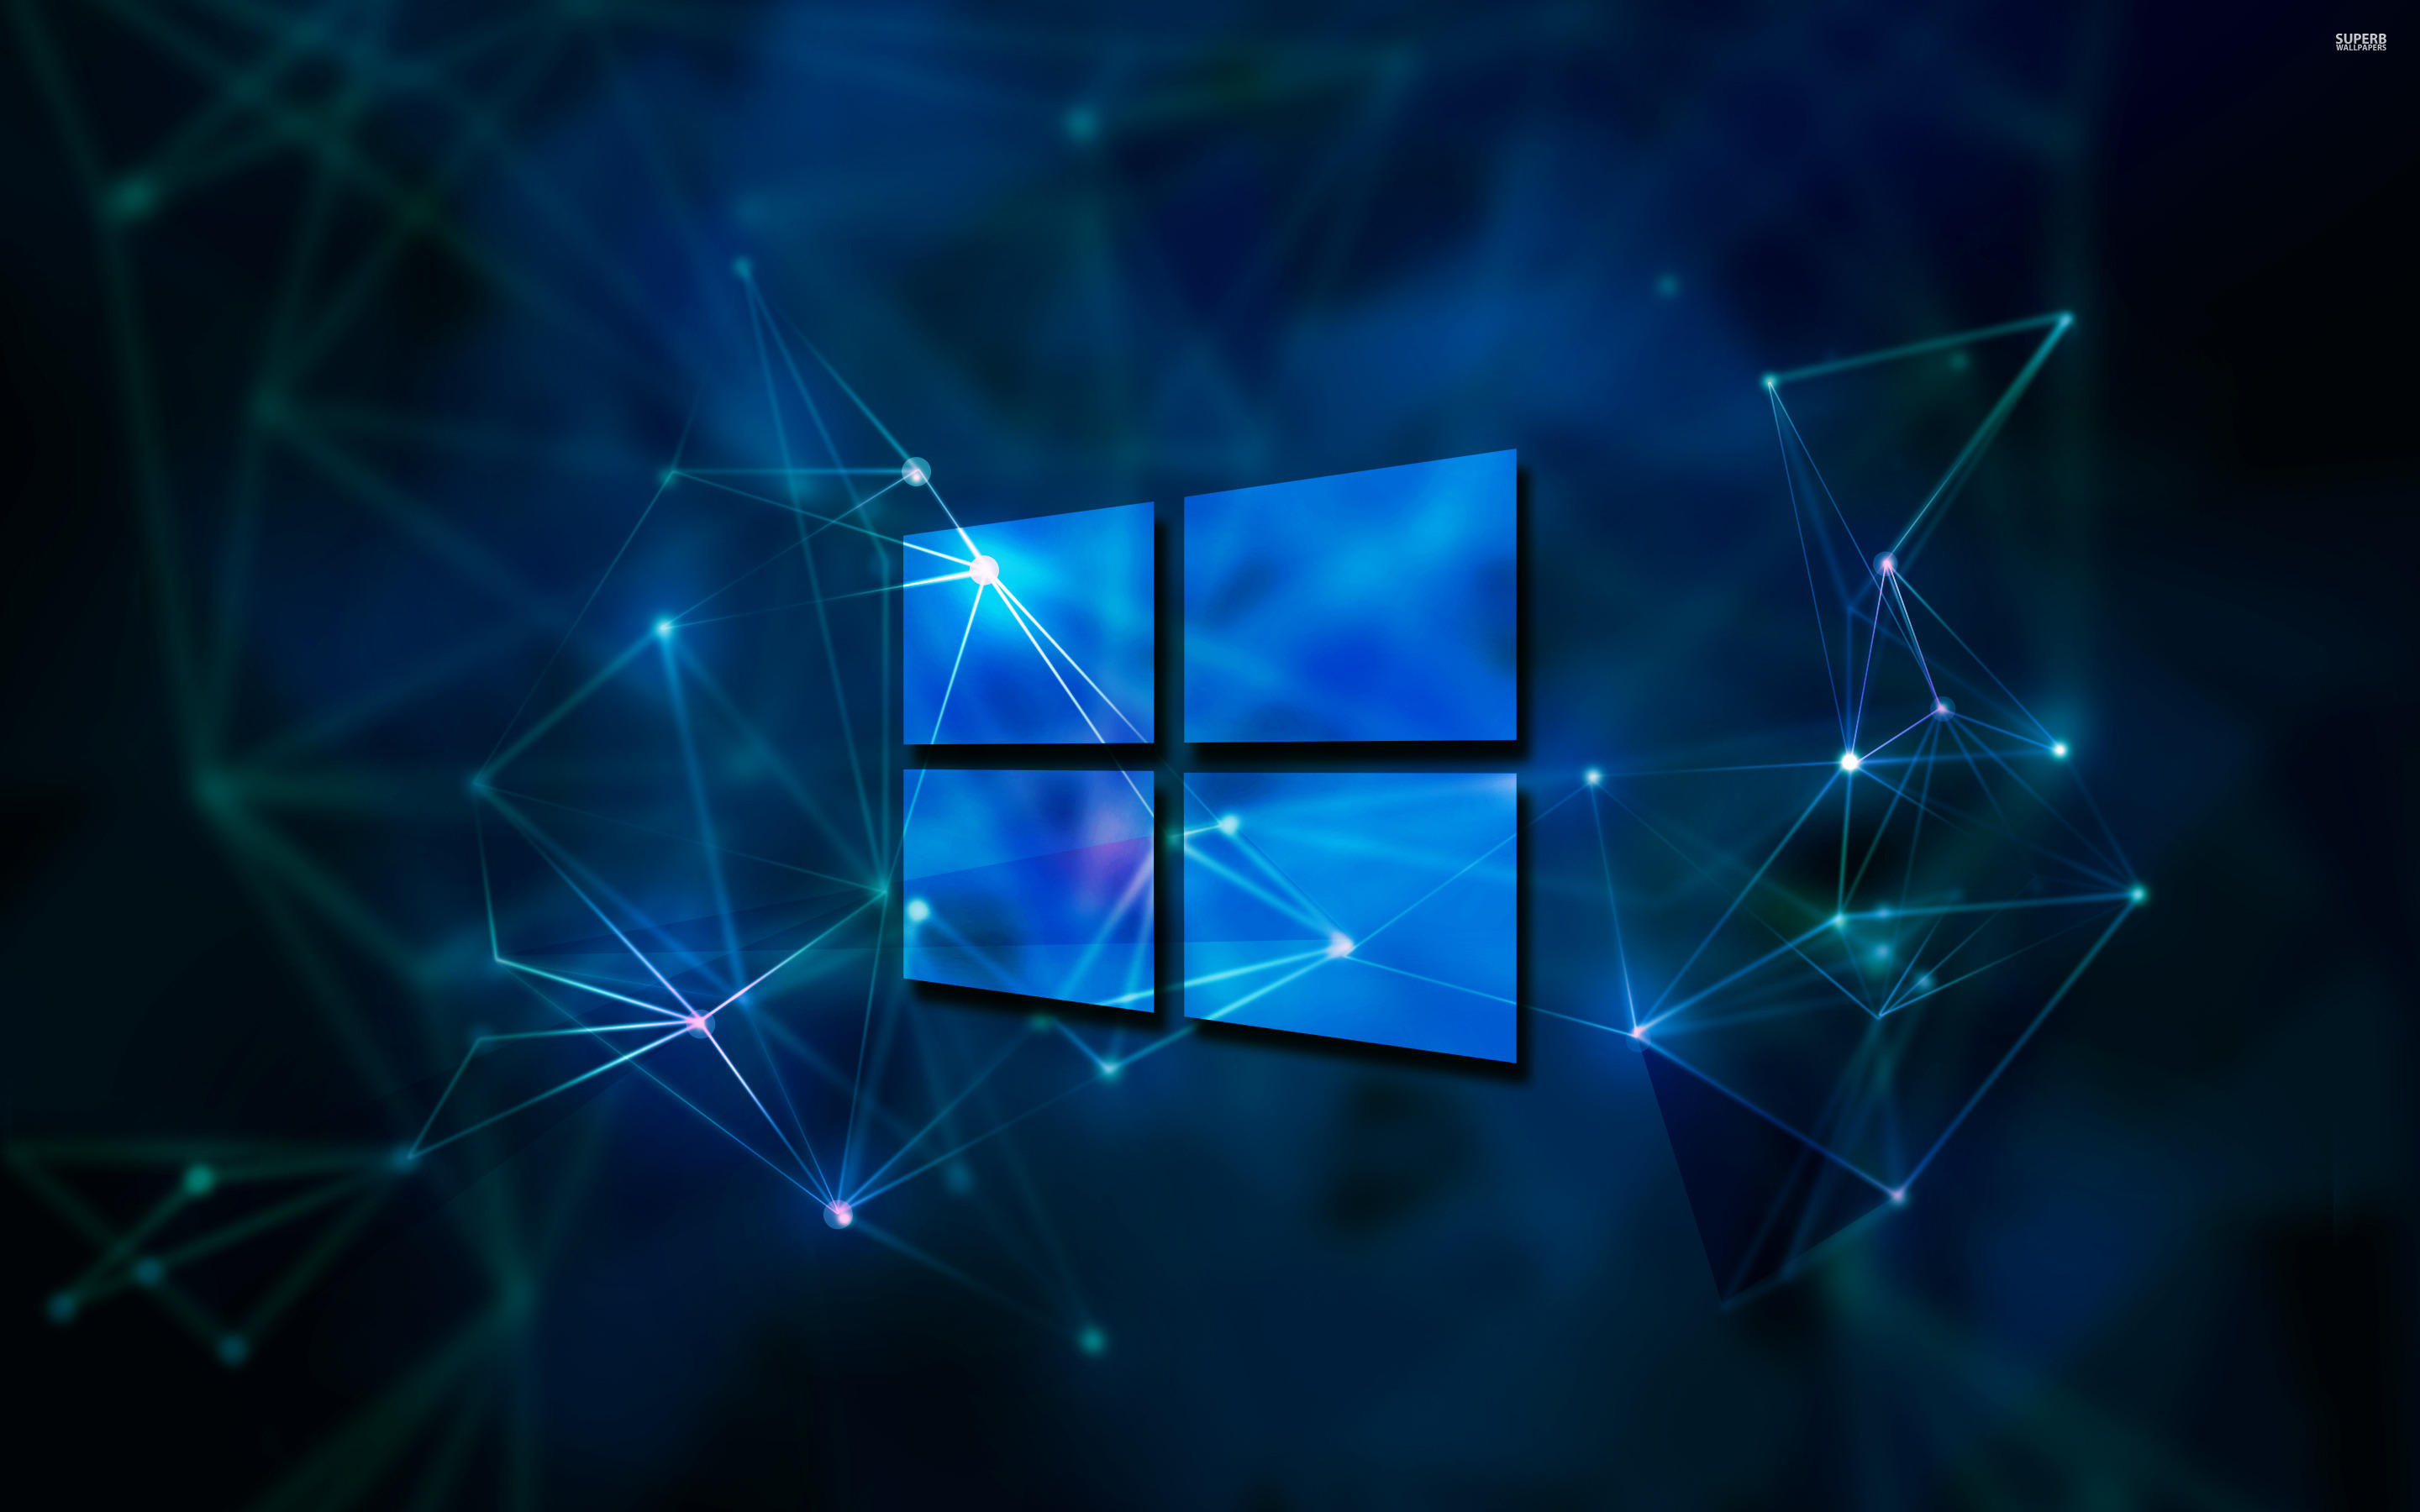 best windows 10 hd wallpaper mytechshout blogging